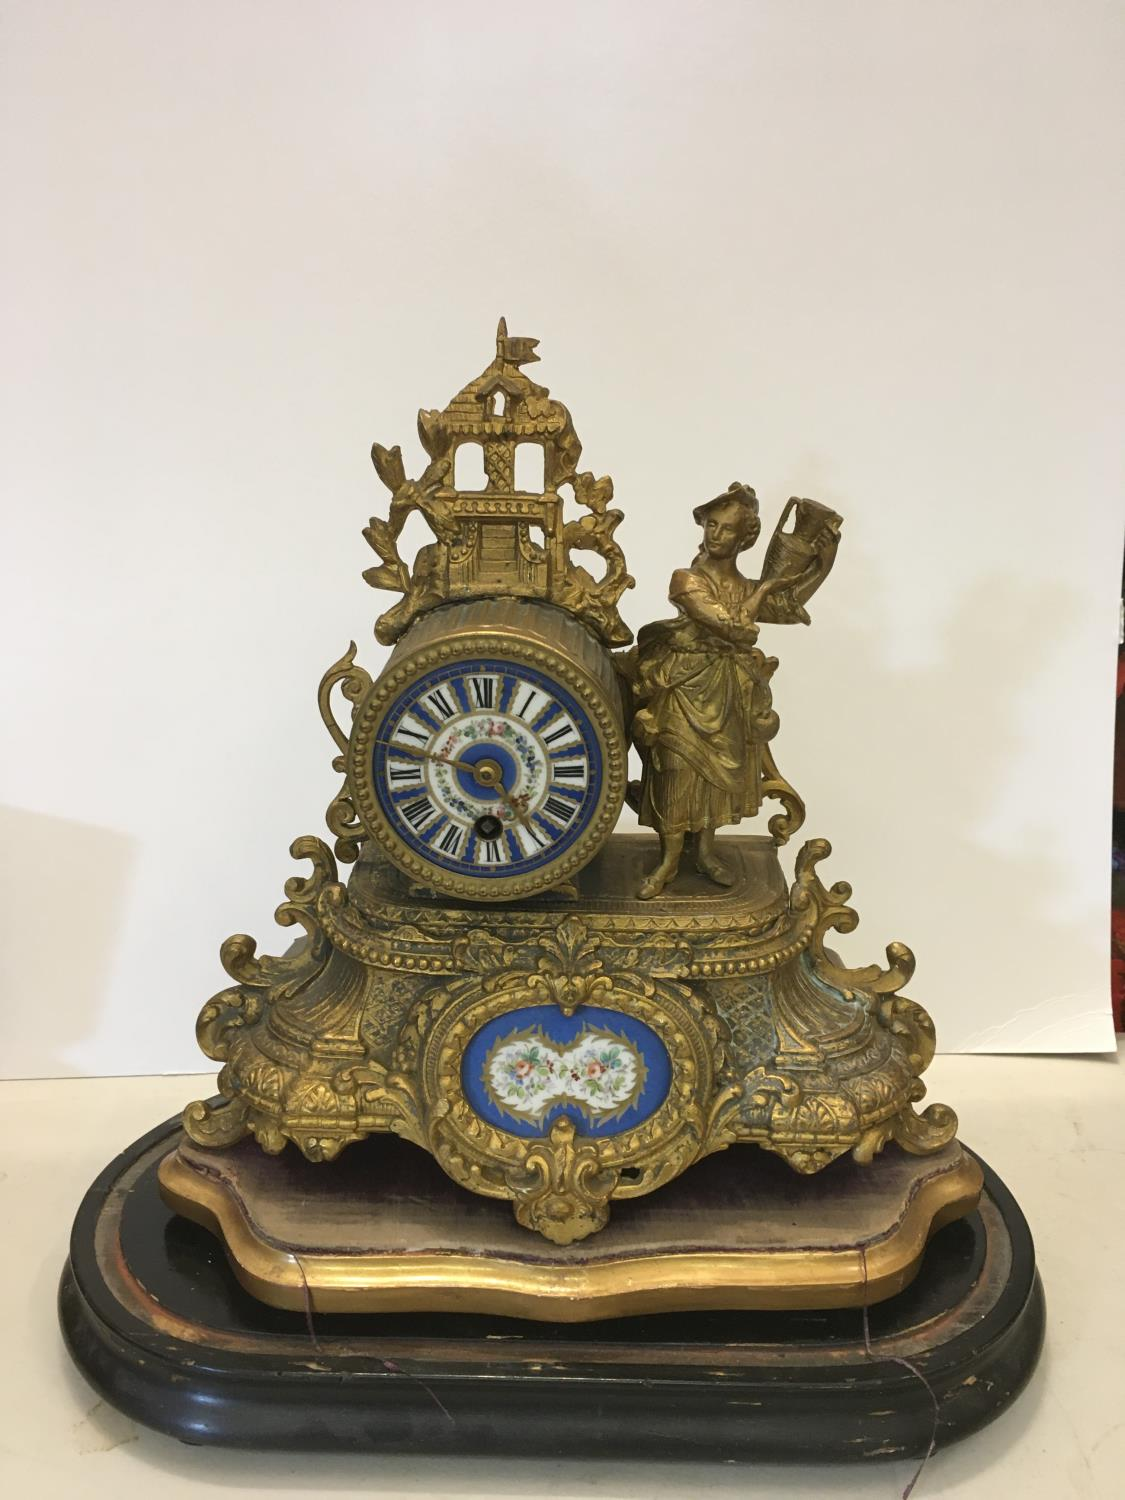 Gilt spelter mantle clock with figural Lady to the side, probably with Sevres plaques on original - Image 2 of 4